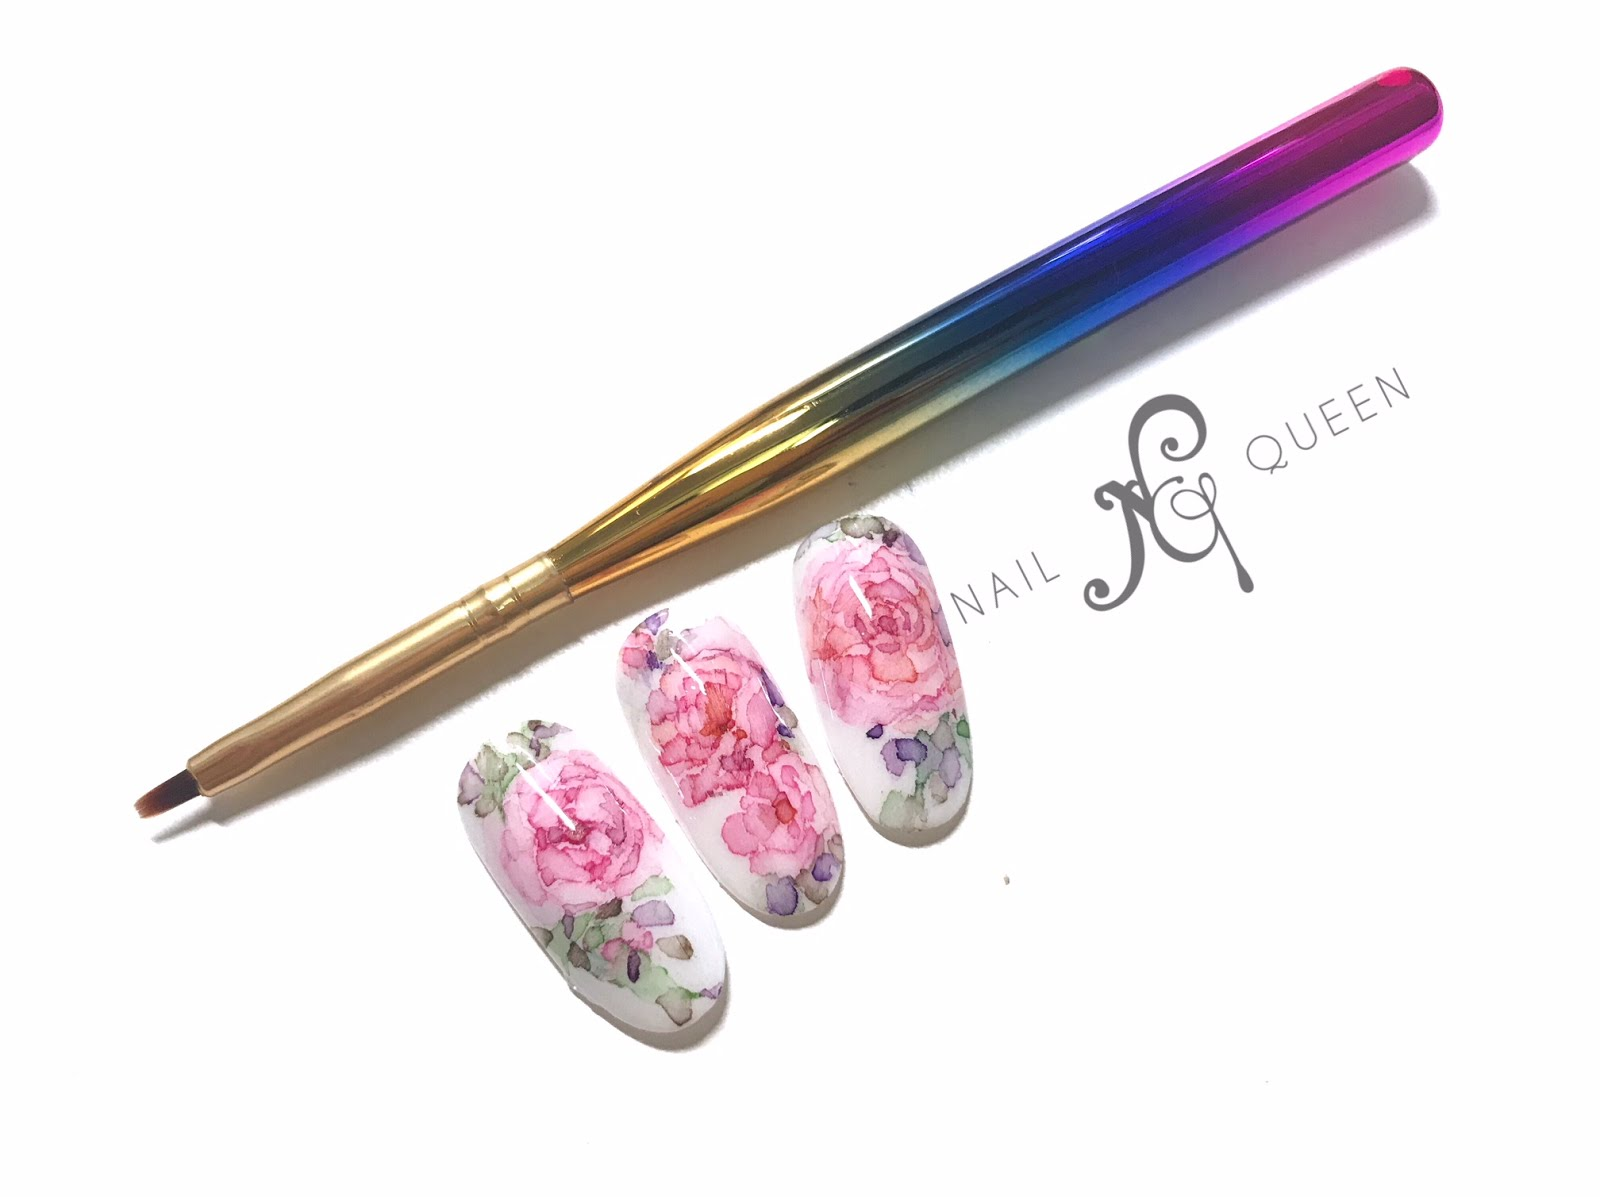 WATERCOLOR NAIL ART - FLORAL DESIGNS